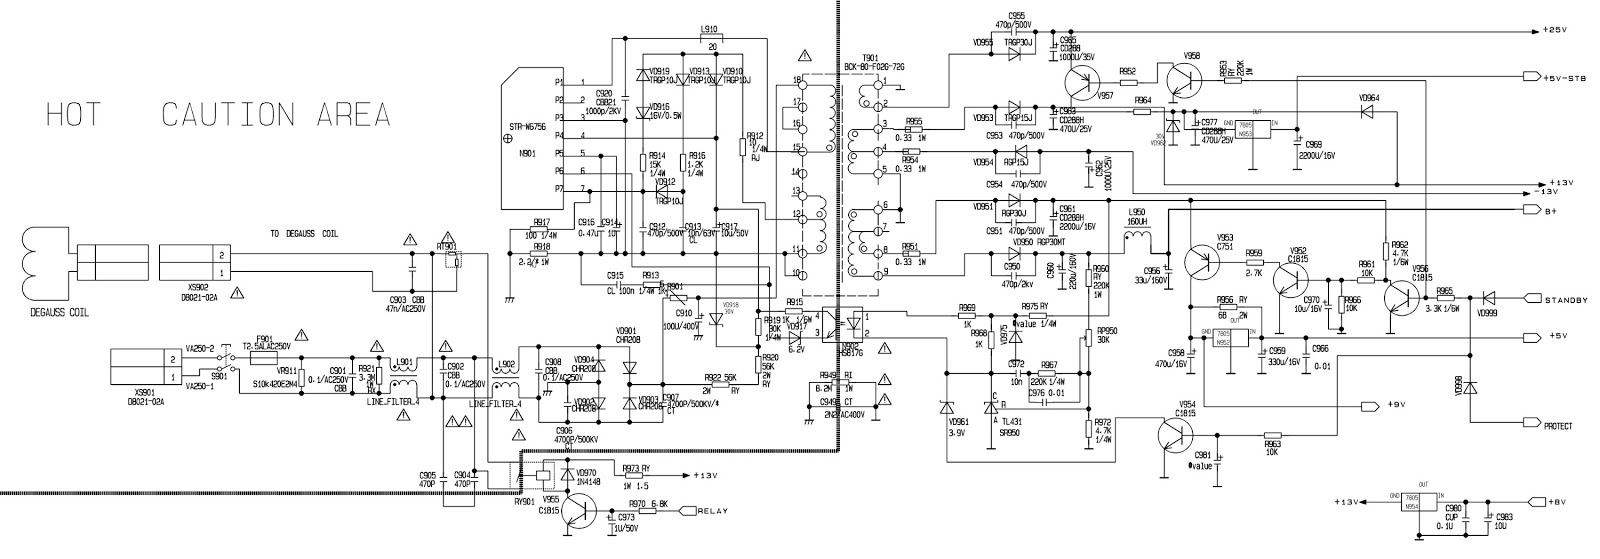 Strw 6756 Tv Power Supply Smps Schematic Circuit Diagram Click On To Zoom In